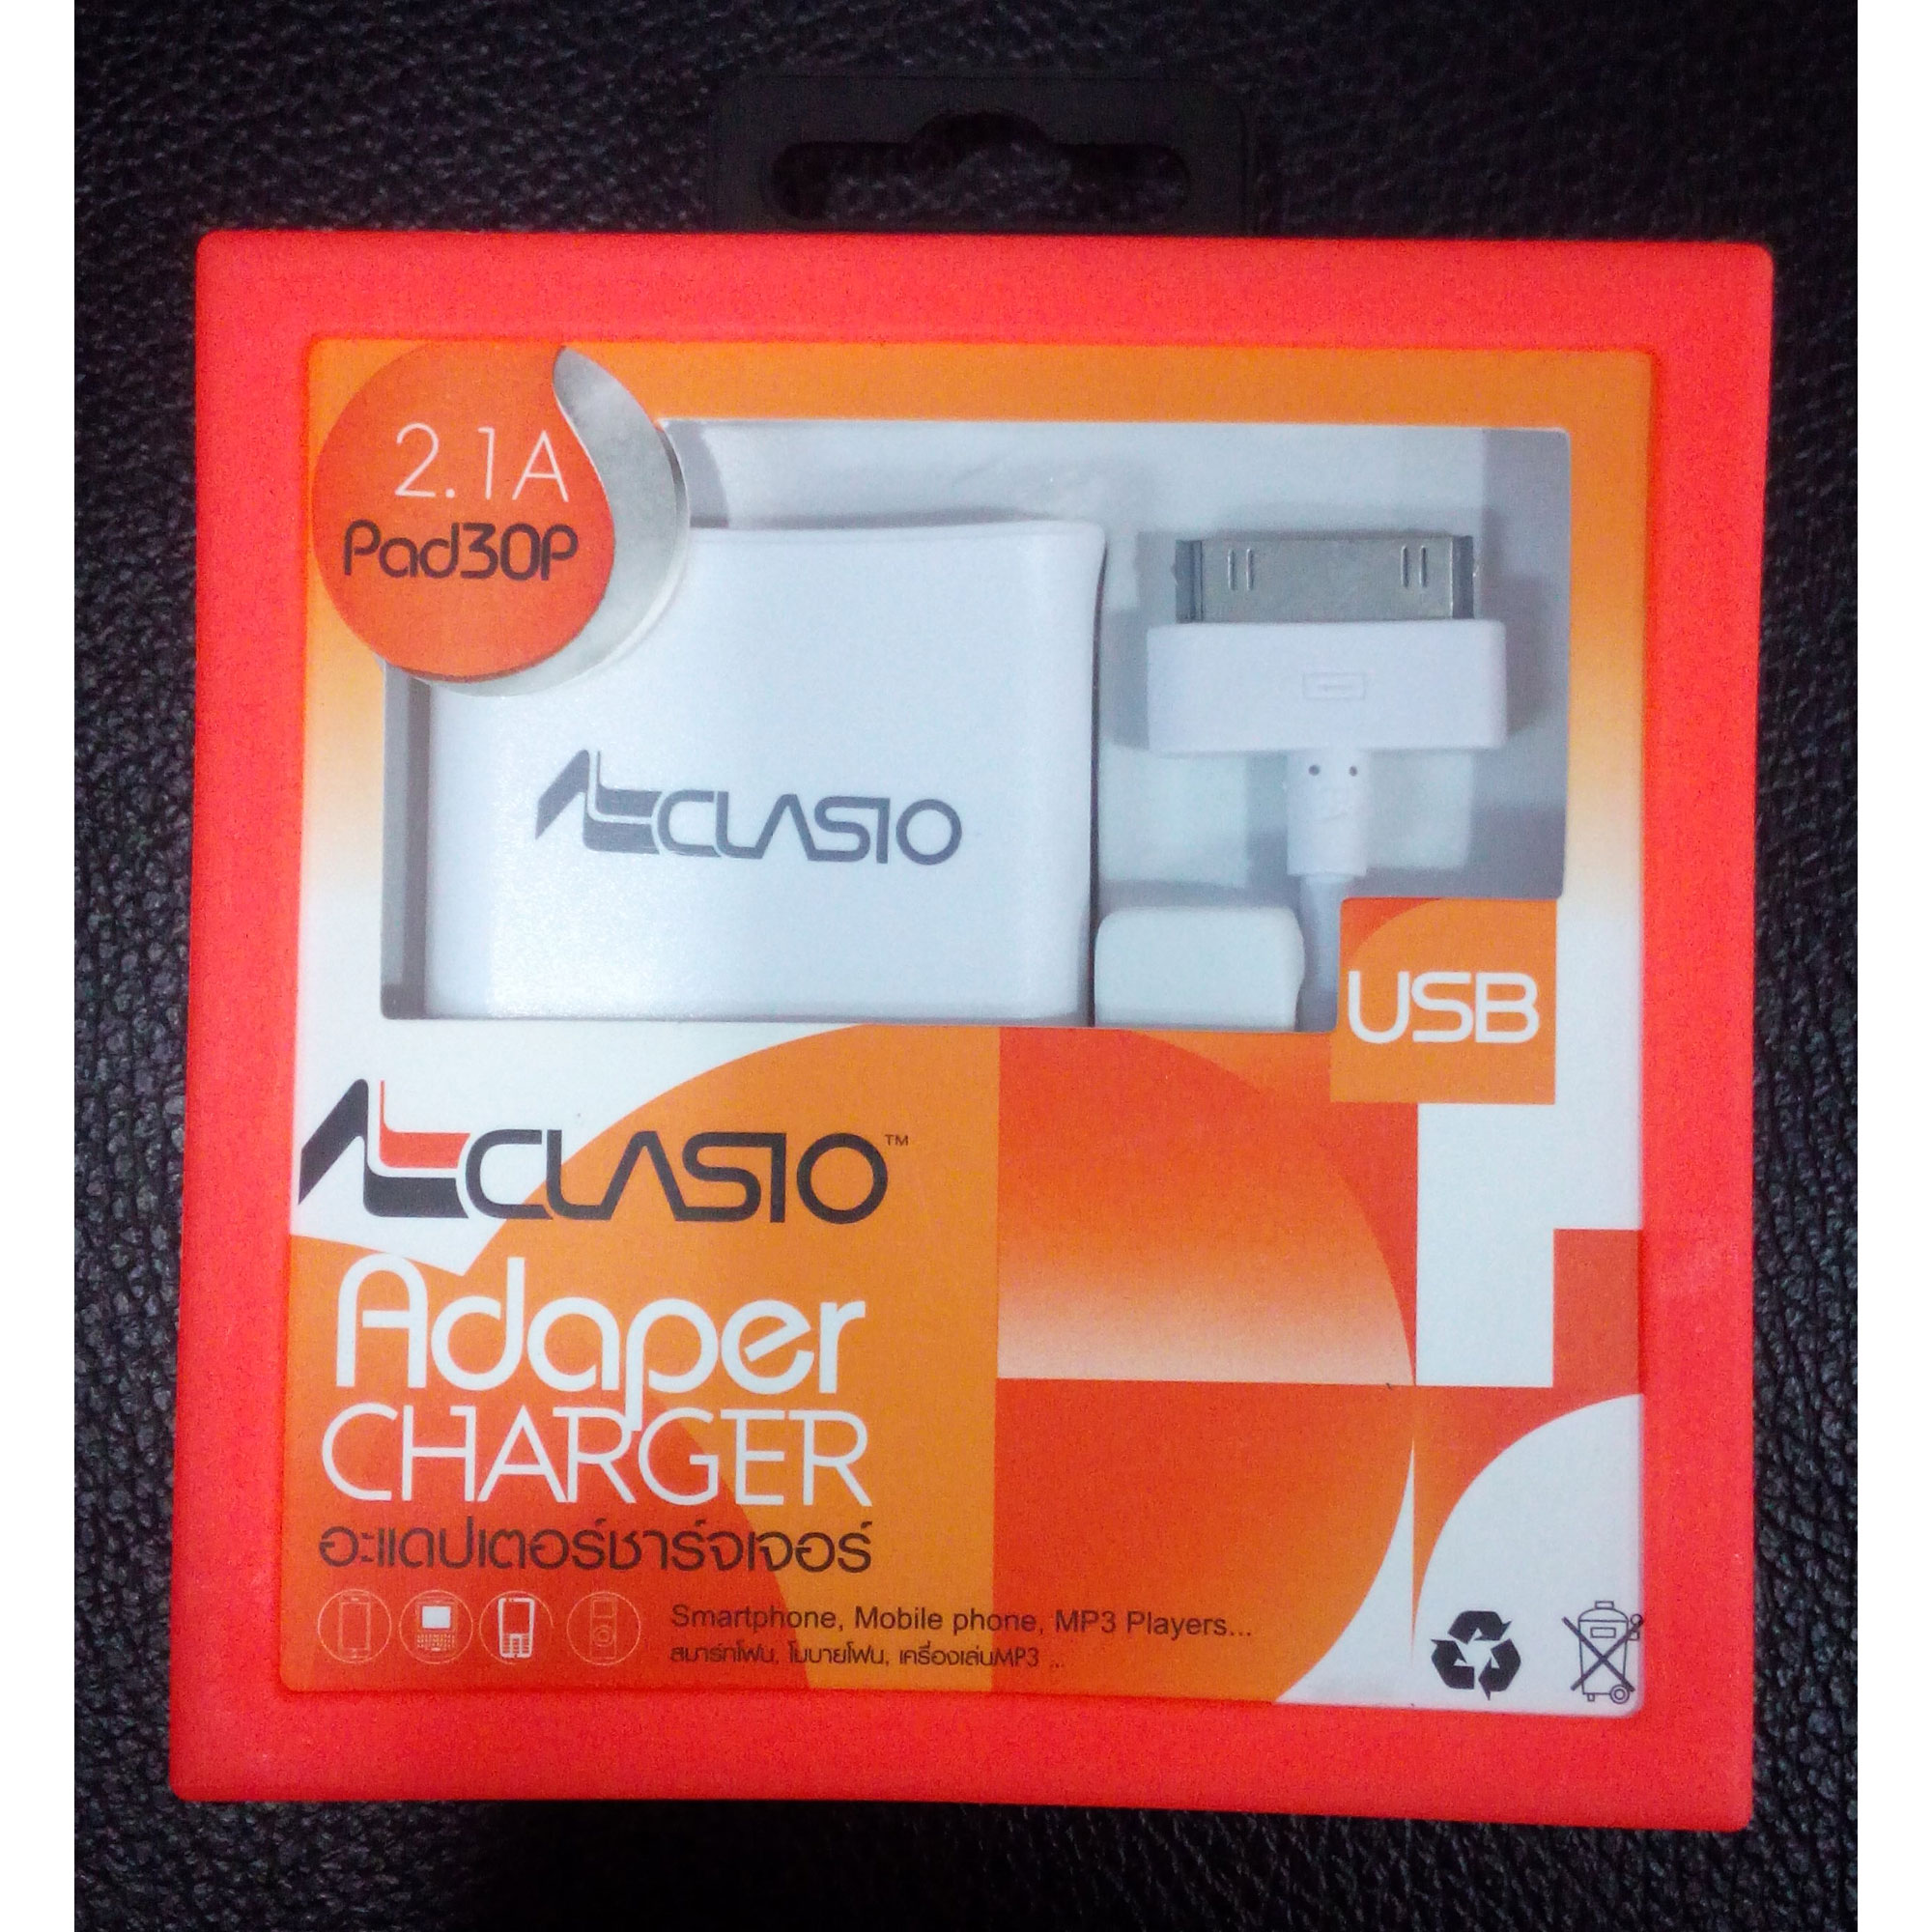 Adapter Charger 2.1